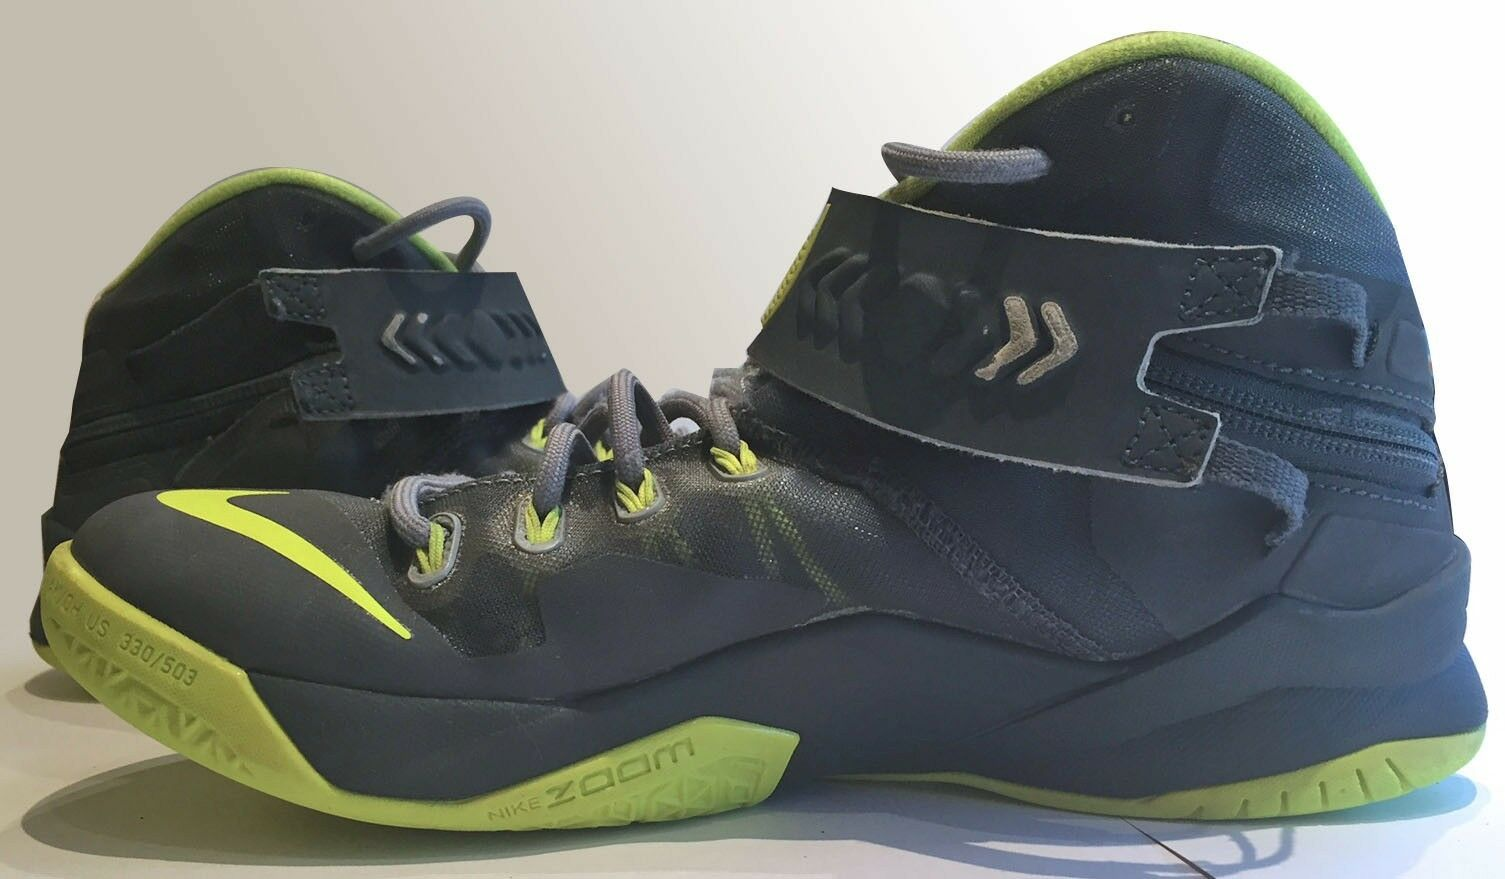 Nike gray/volt Zoom LeBron Soldier 8 in magnet gray/volt Nike green youth size 7 34c34a